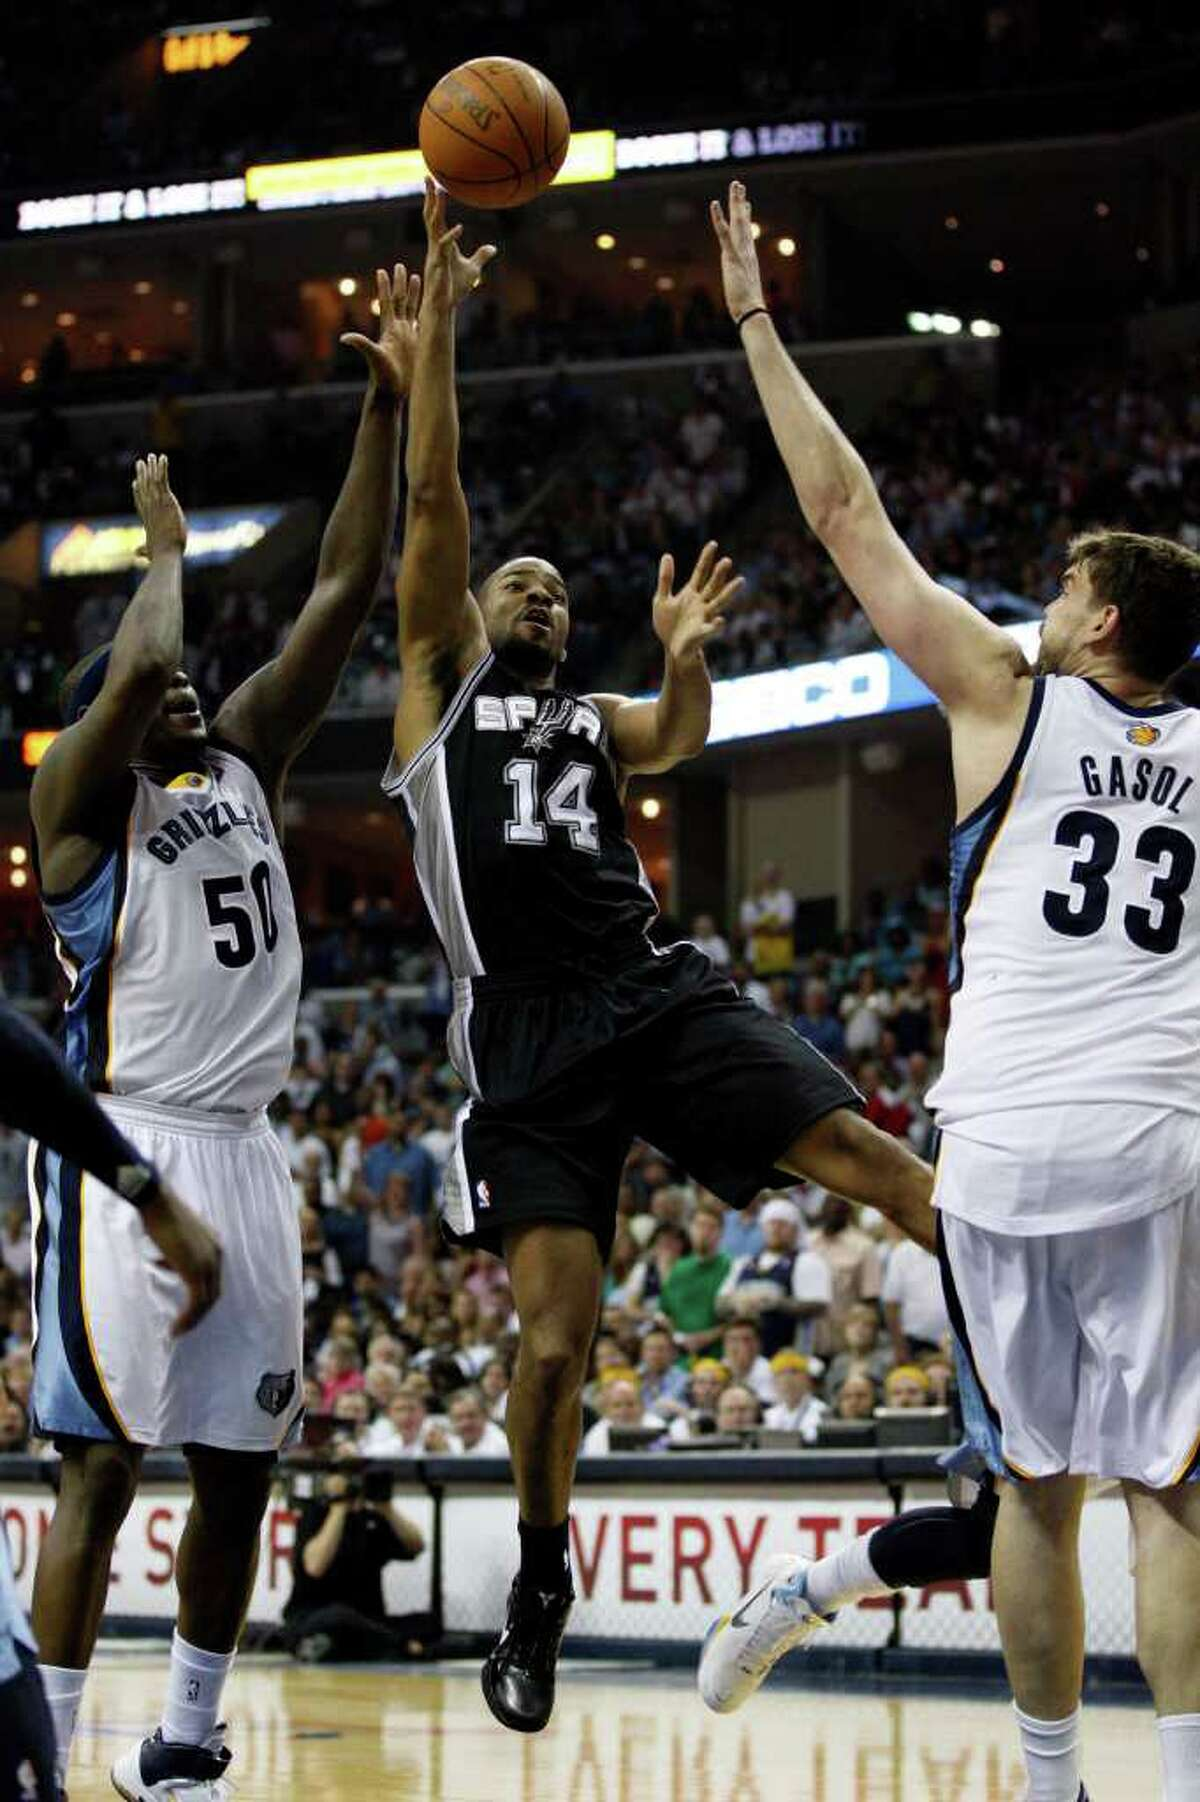 SPURS -- San Antonio Spurs Gary Neal shoots over Memphis Grizzlies Marc Gasol and Zach Randolph during the second half in the third game of the Western Conference Quarter First Round at FedExForum in Memphis, TN, April 23, 2011. The Grizzlies won 91-88 and go up 2-1 in the series. JERRY LARA/glara@express-news.net